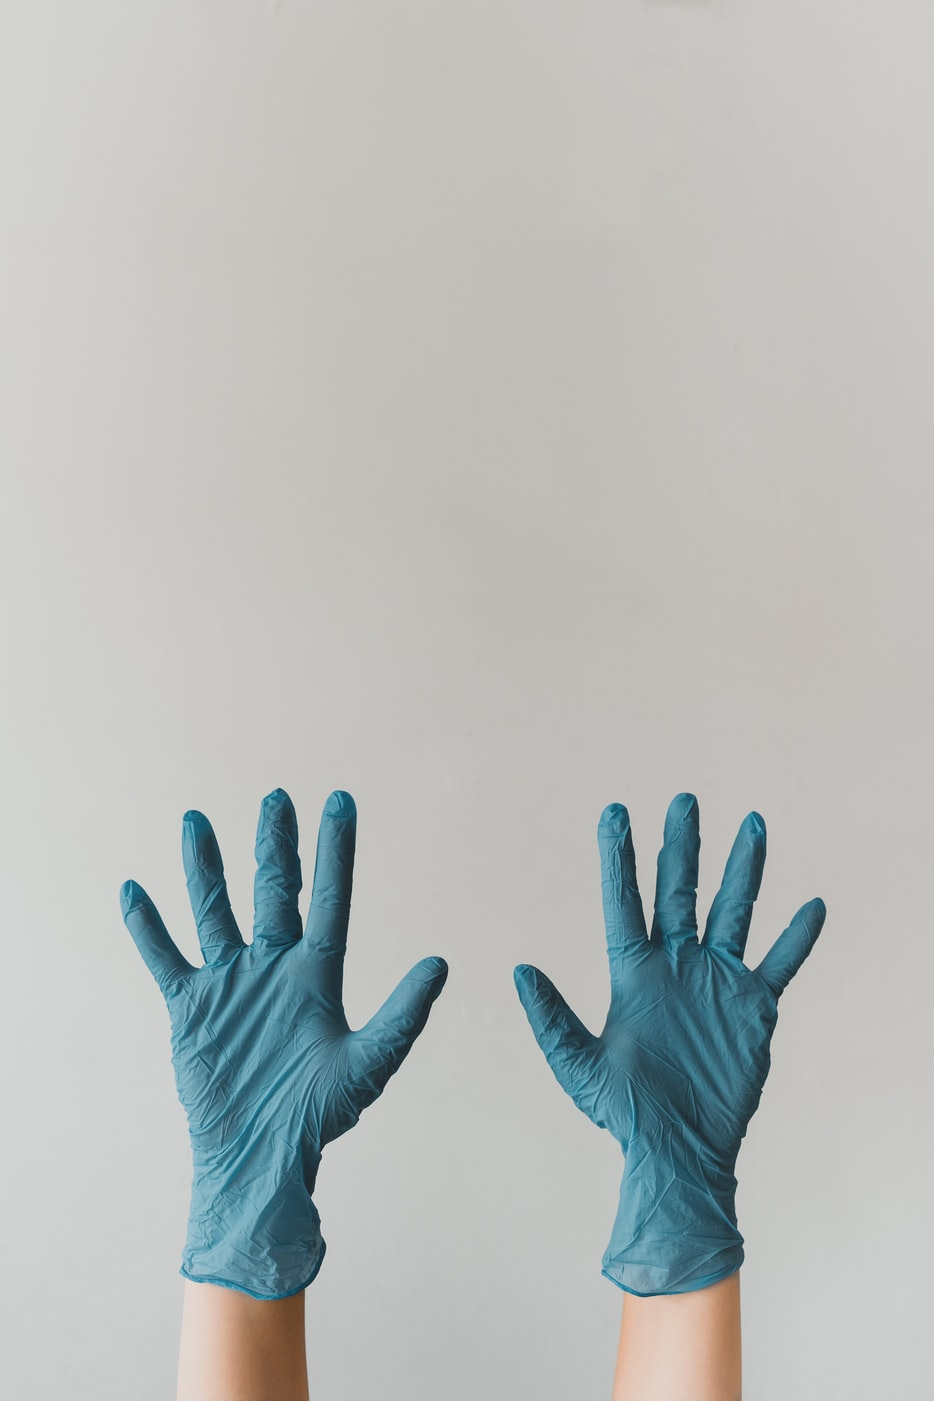 A pair of gloved hands